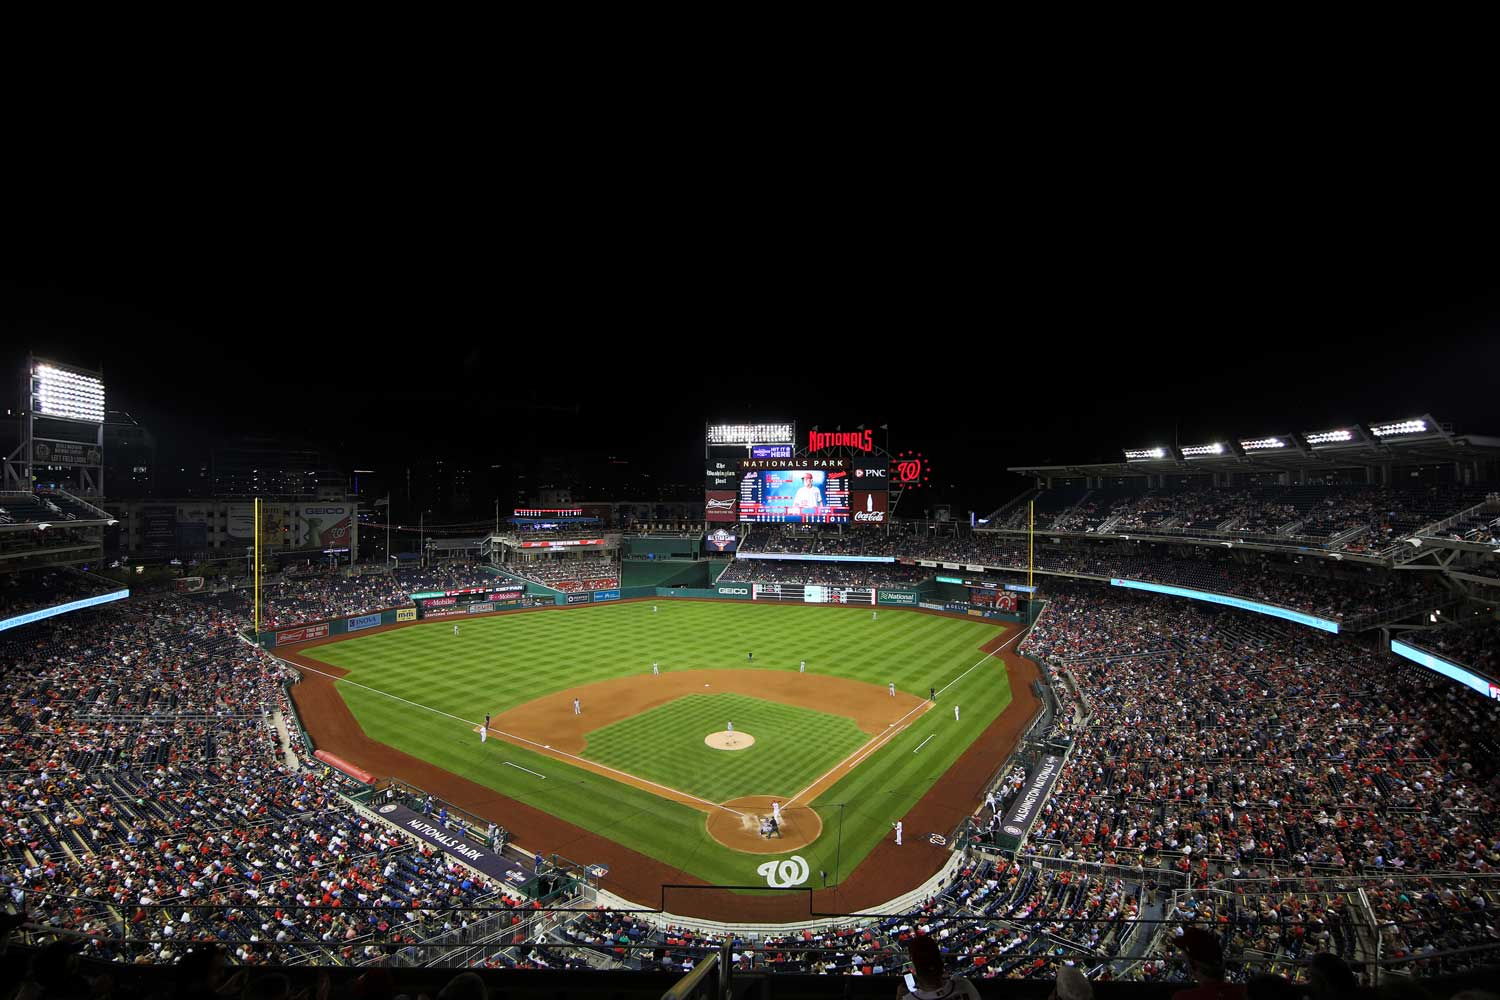 Nationals Park is 10 minutes from Top of the Hill Apartments in Temple Hills, MD